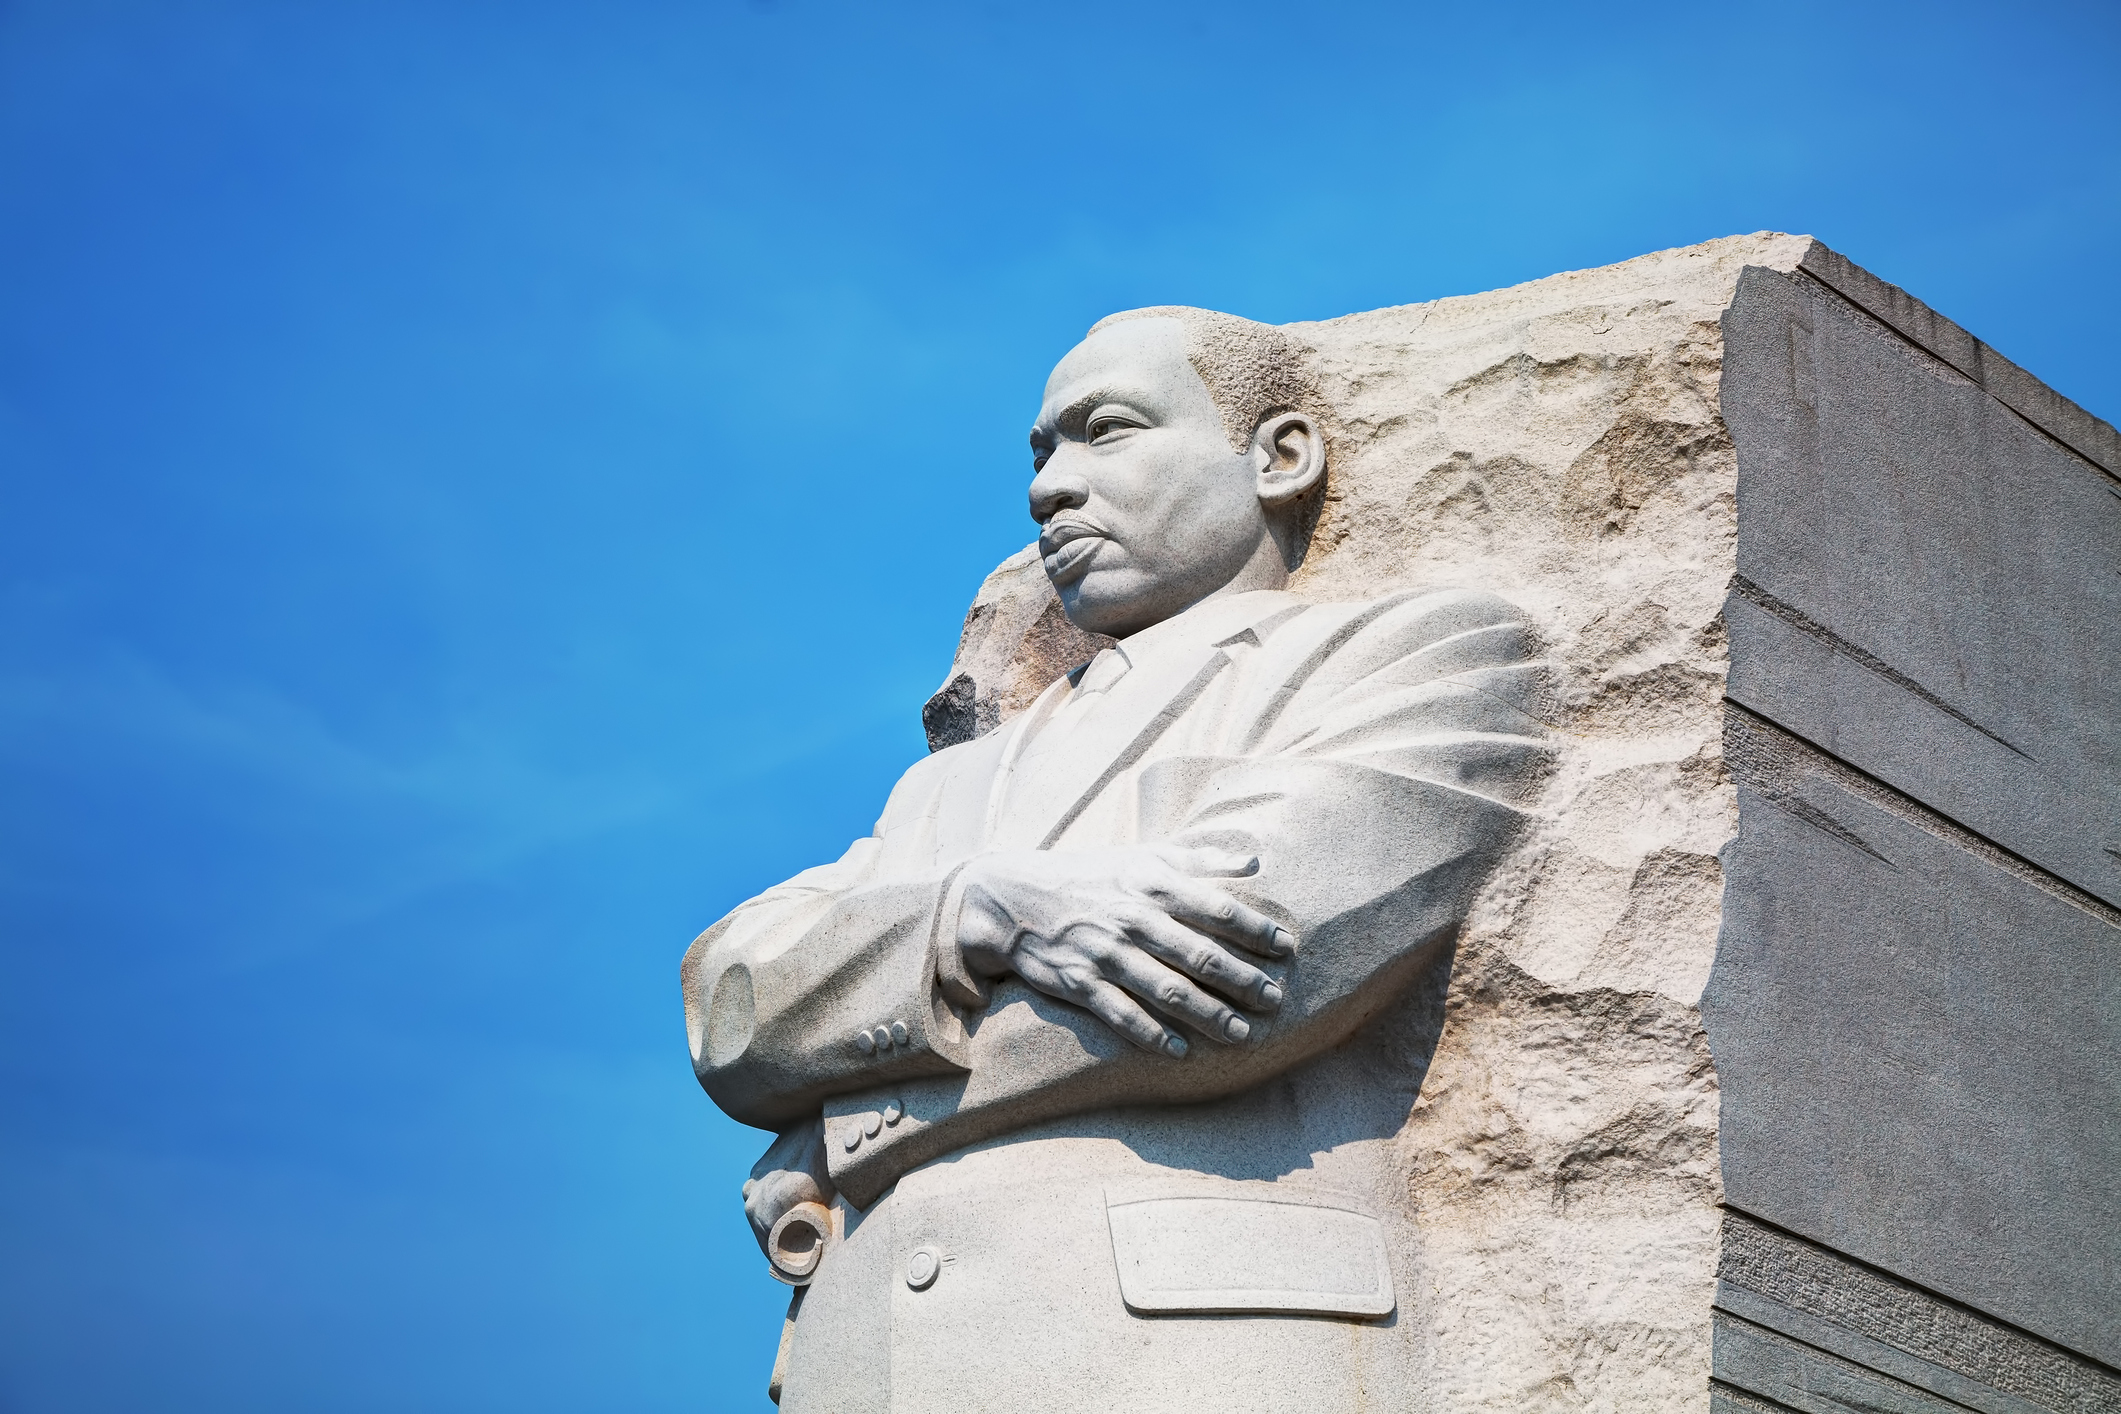 Washington: Martin Luther King, Jr memorial monument on September 2, 2015 in Washington, DC.